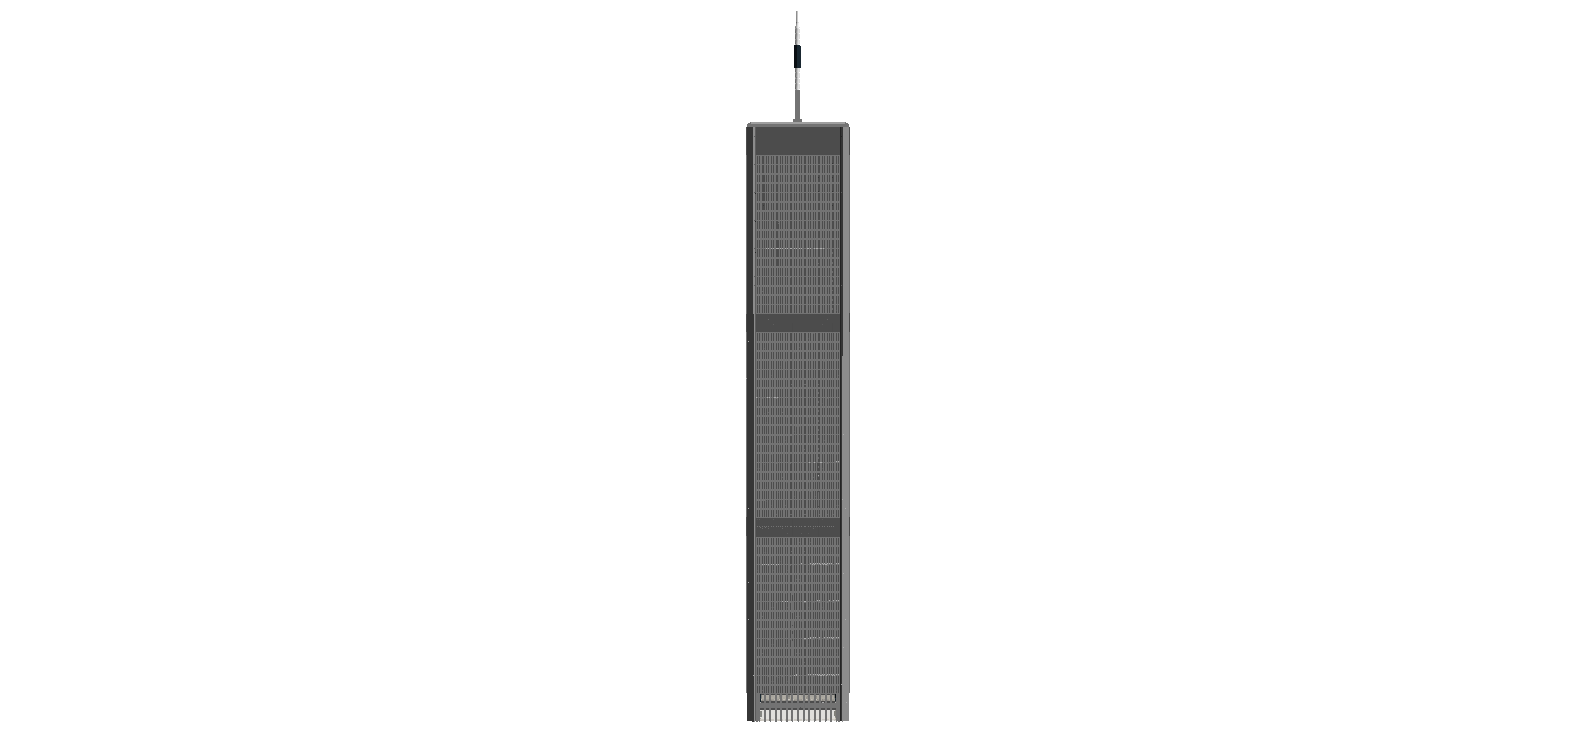 911 drawing twin tower. Lego skylines page skyscraperpage